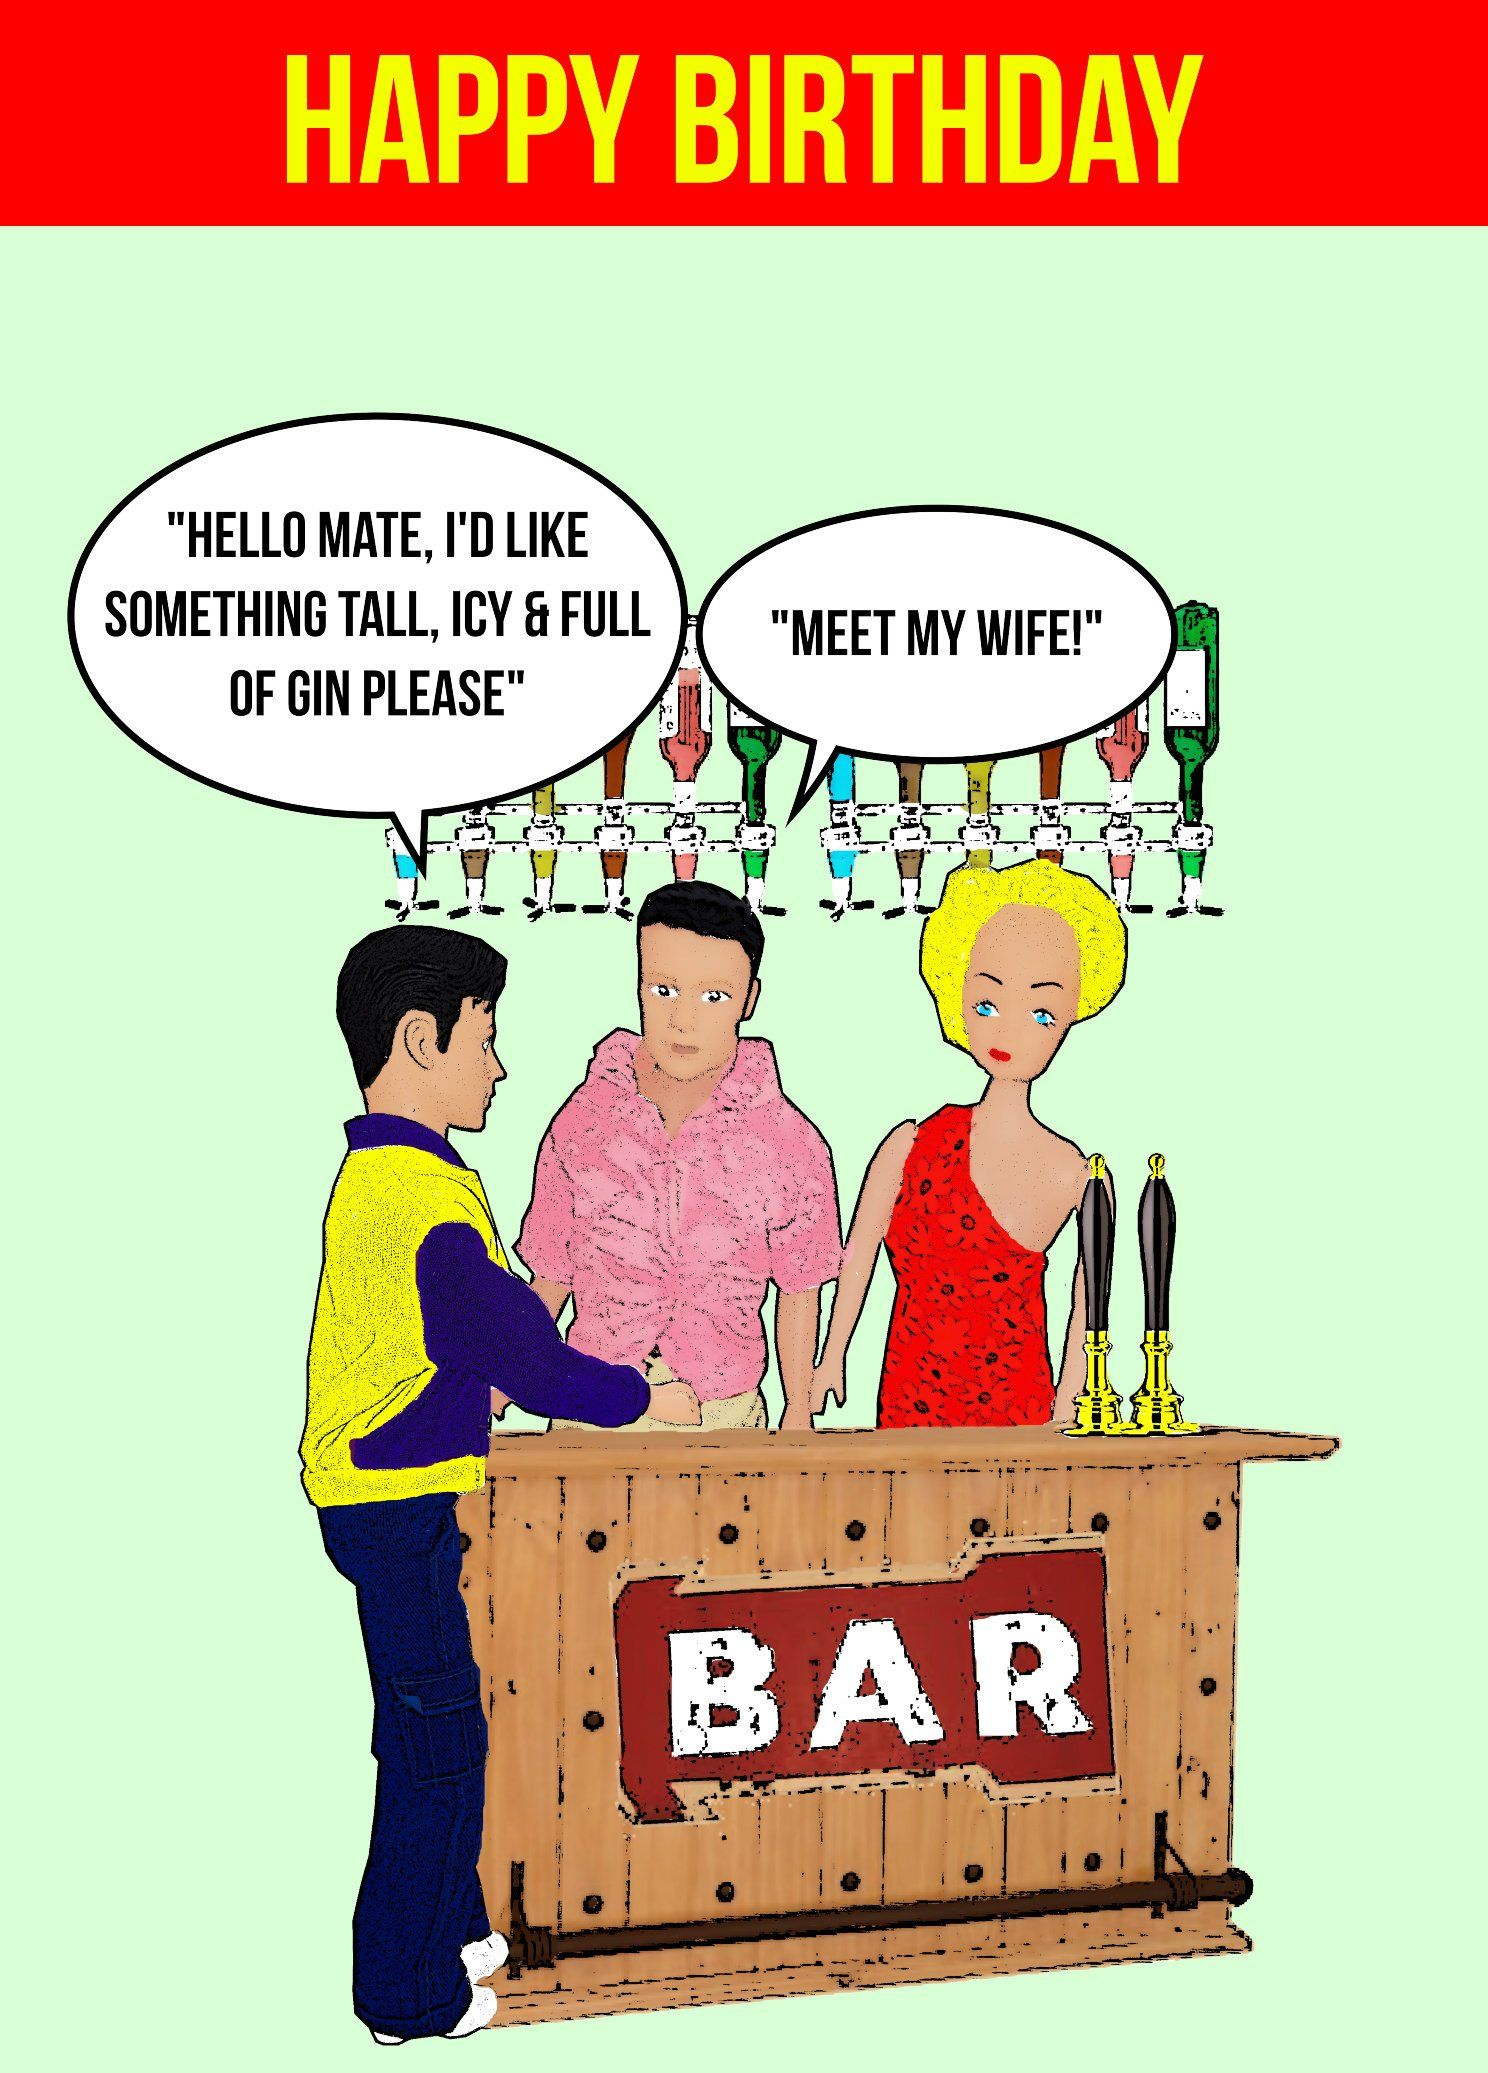 Rude Funny Hilarious Happy Birthday Card Barman Wife Id Like Something Tall Icy And Full Of Gin Meet My Bar Drinking Dolls By